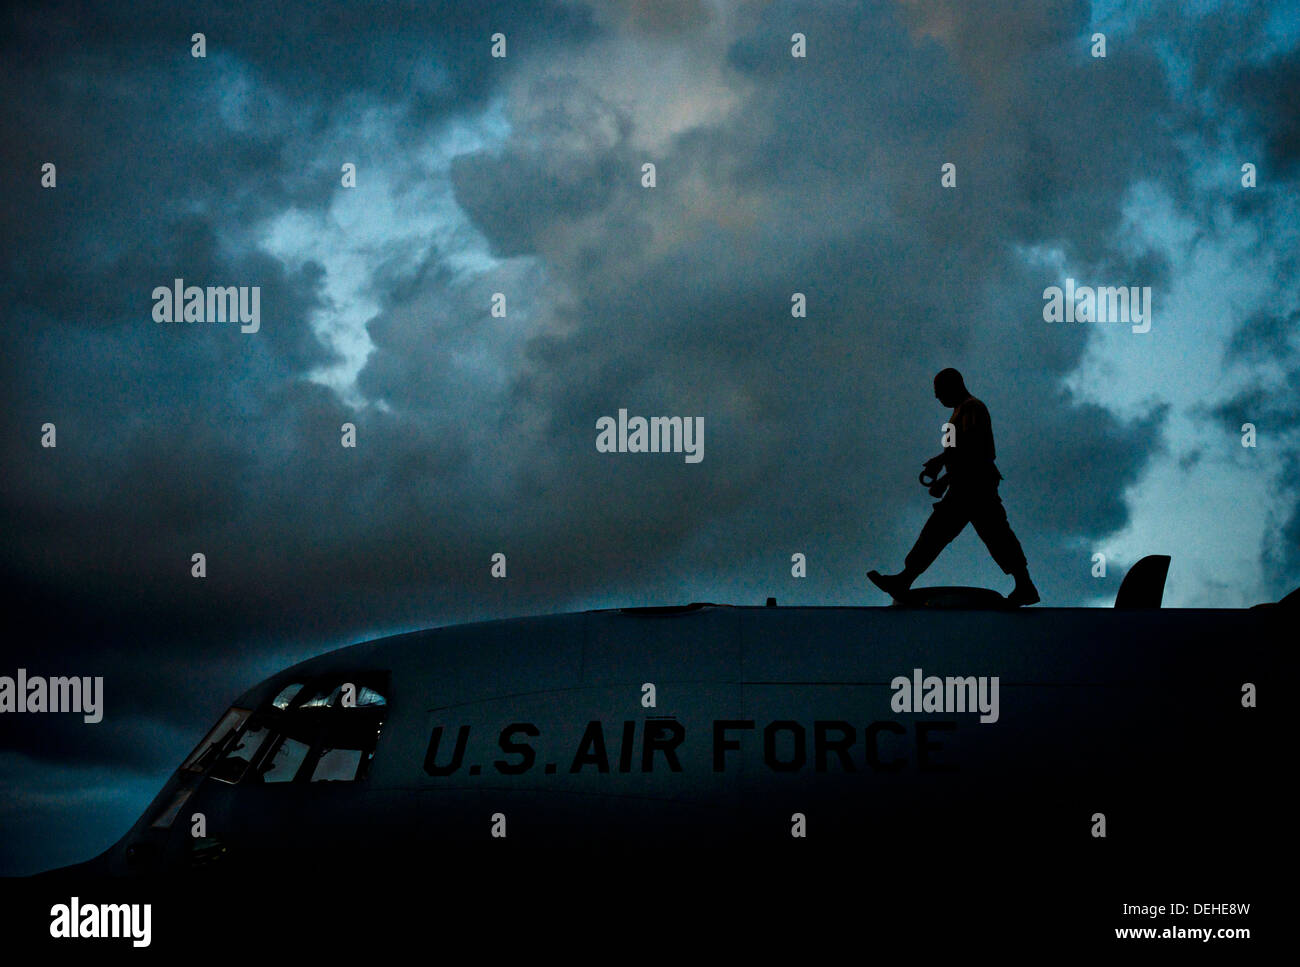 A US Air Force crew member walks across the top of a WC-130 Hercules transport aircraft with the 53rd Weather Reconnaissance Squadron during routine maintenance June 5, 2013 in Biloxi, MS. - Stock Image